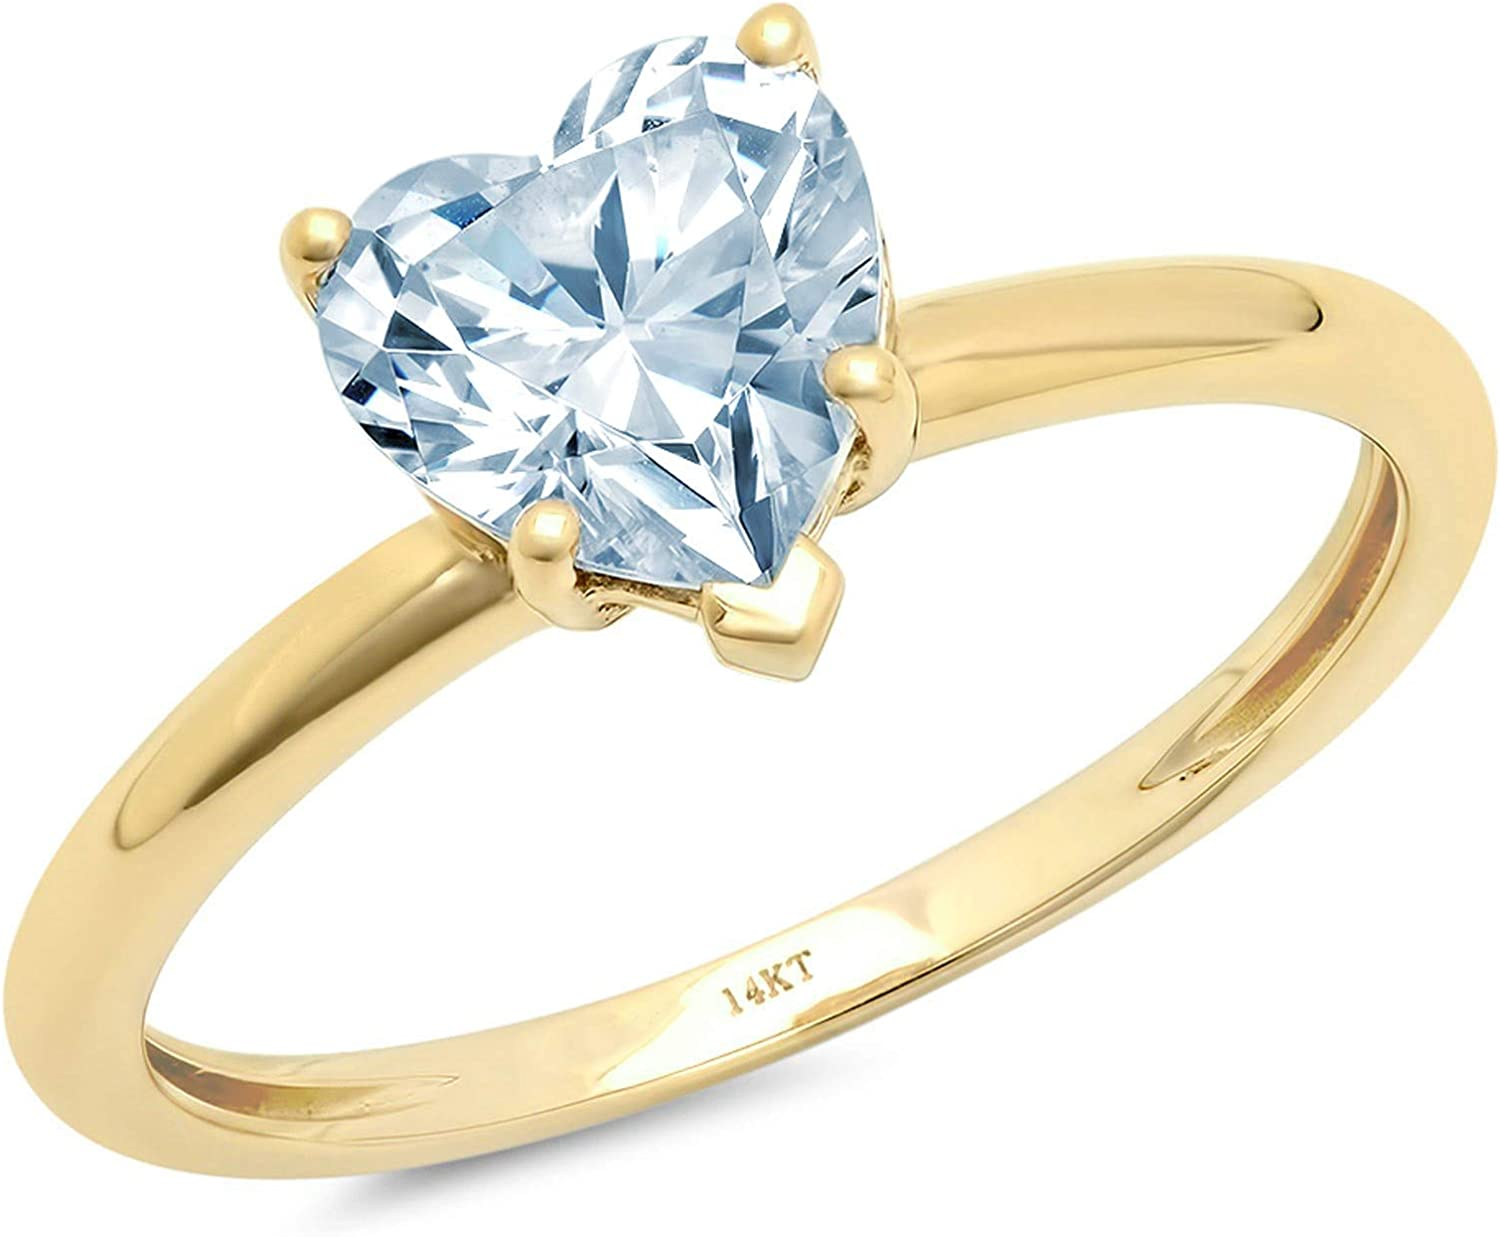 1.9ct Brilliant Heart Cut Solitaire Aquamarine Blue Simulated Diamond Cubic Zirconia Ideal VVS1 D 5-Prong Engagement Wedding Bridal Promise Anniversary Ring Solid 14k Yellow Gold for Women